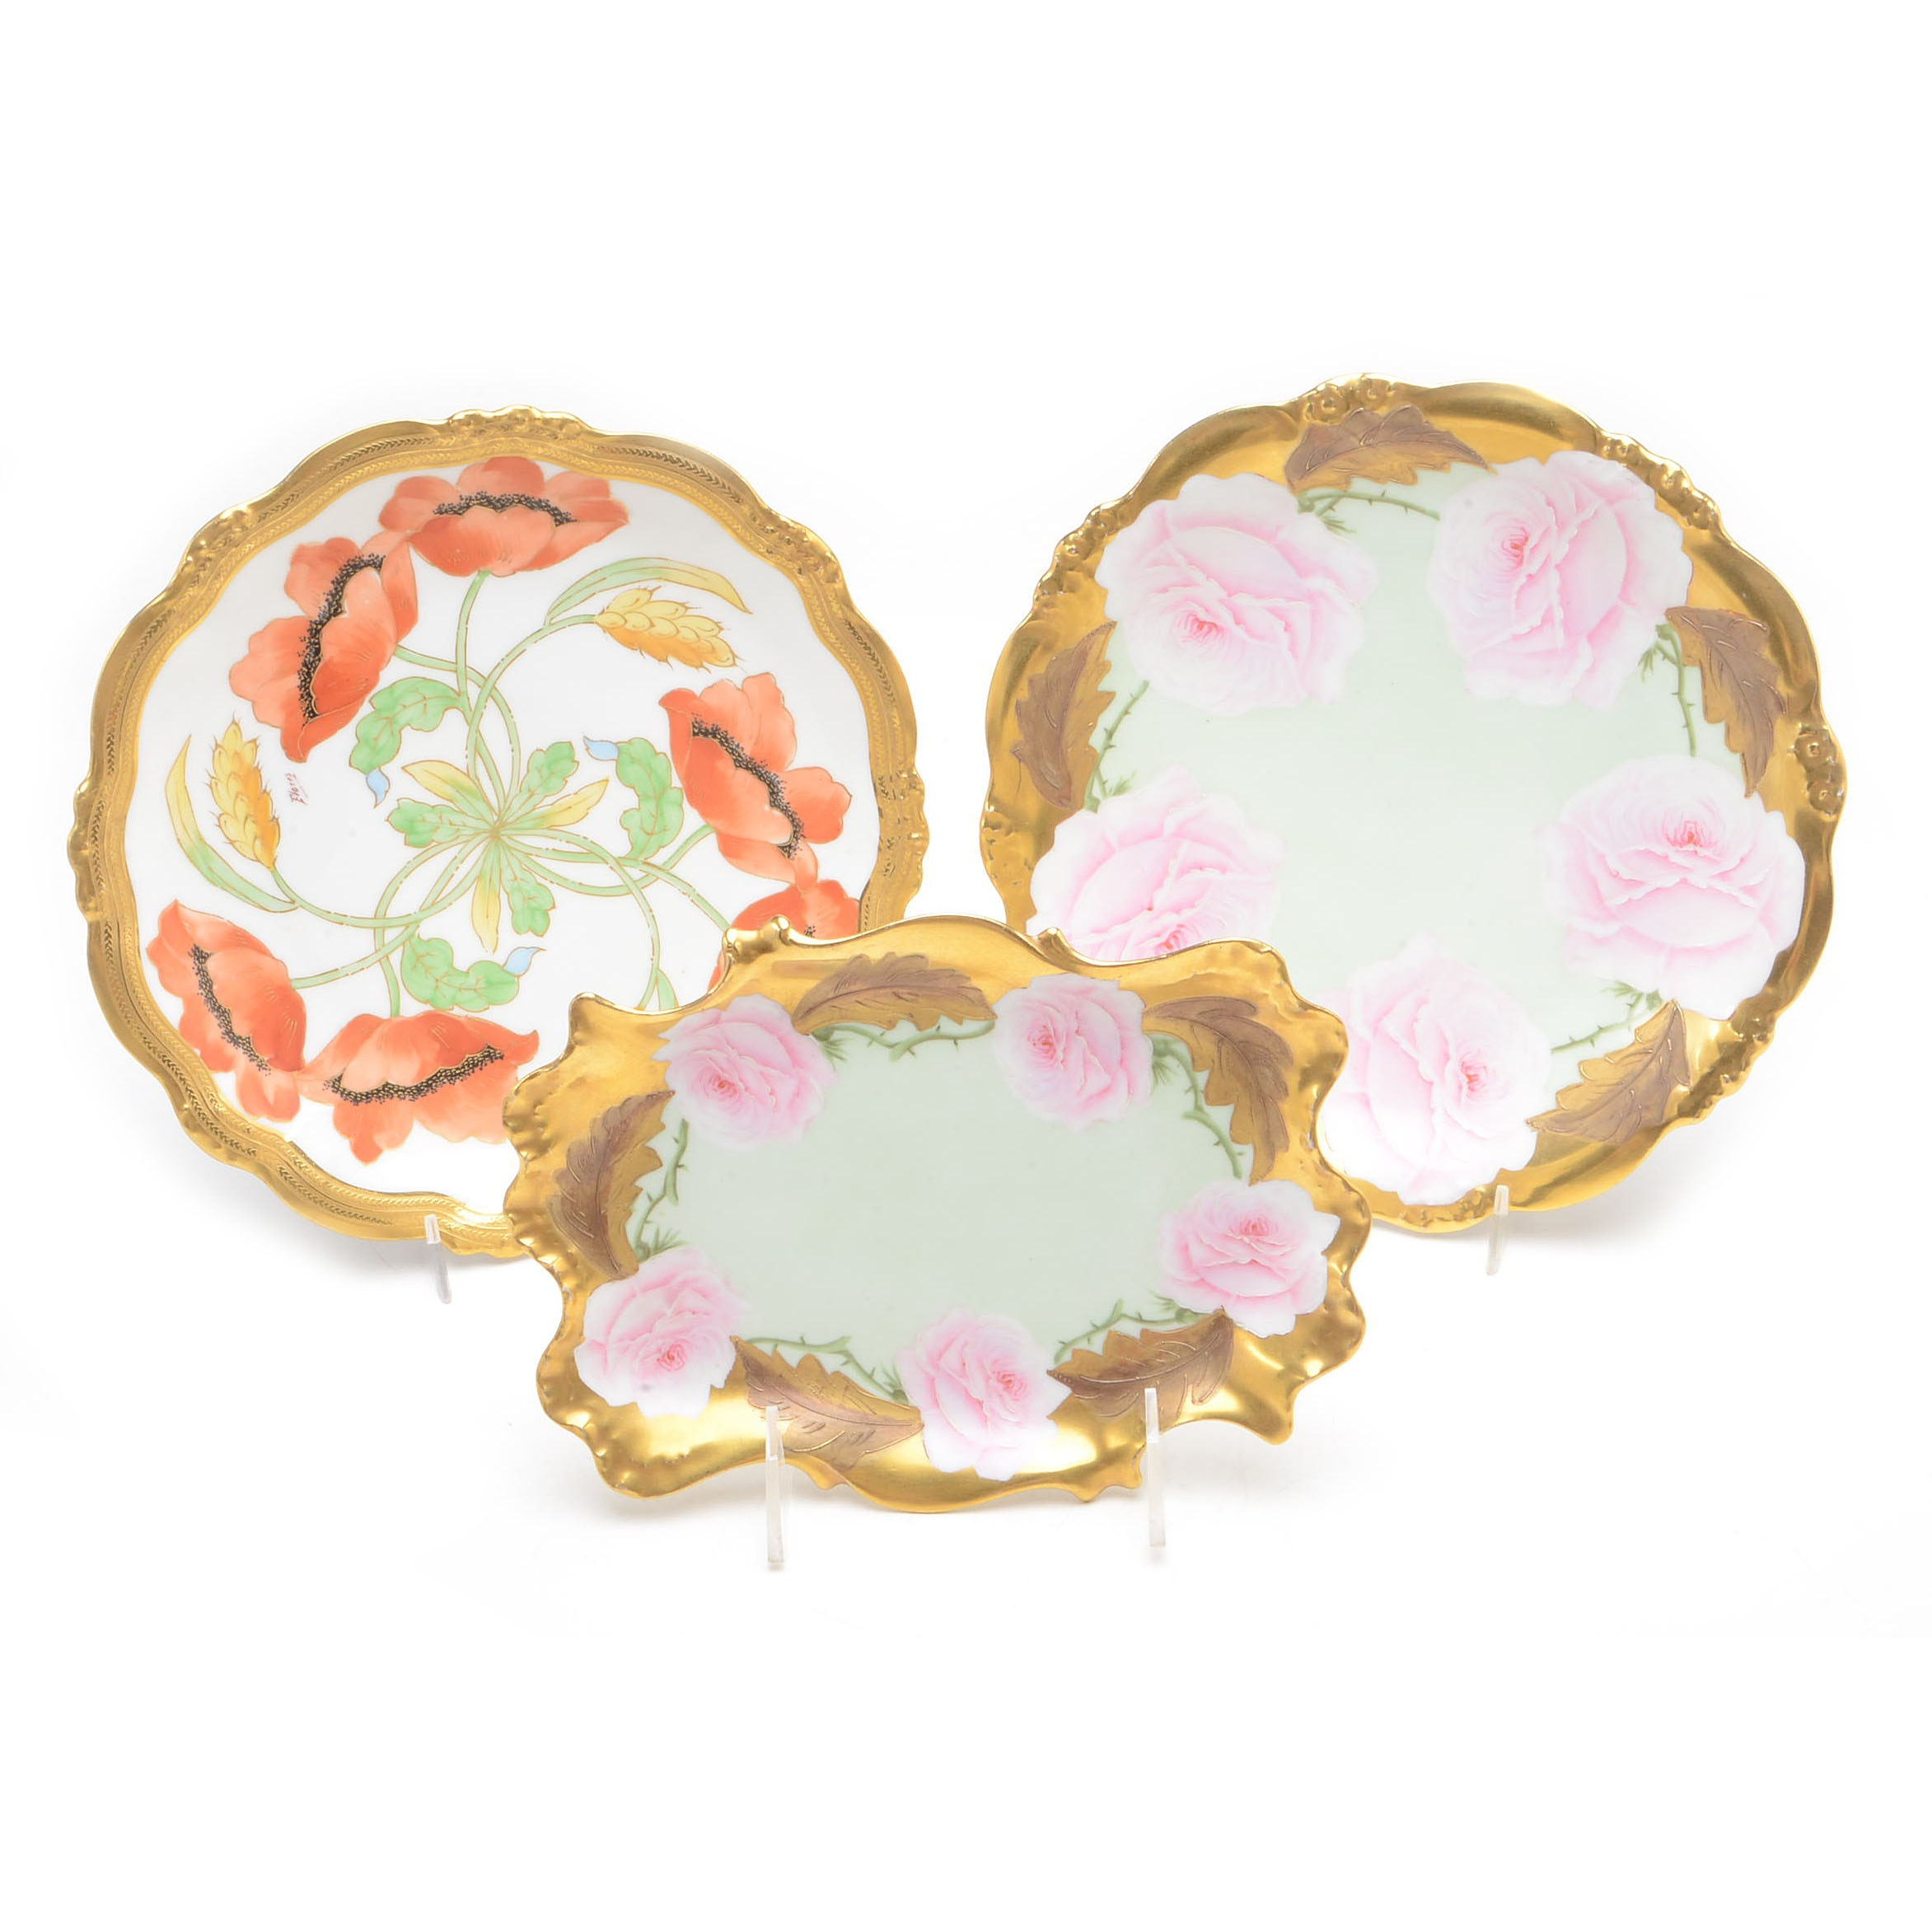 Collection of Antique Limoges Plates ...  sc 1 st  EBTH.com & Collection of Antique Limoges Plates : EBTH